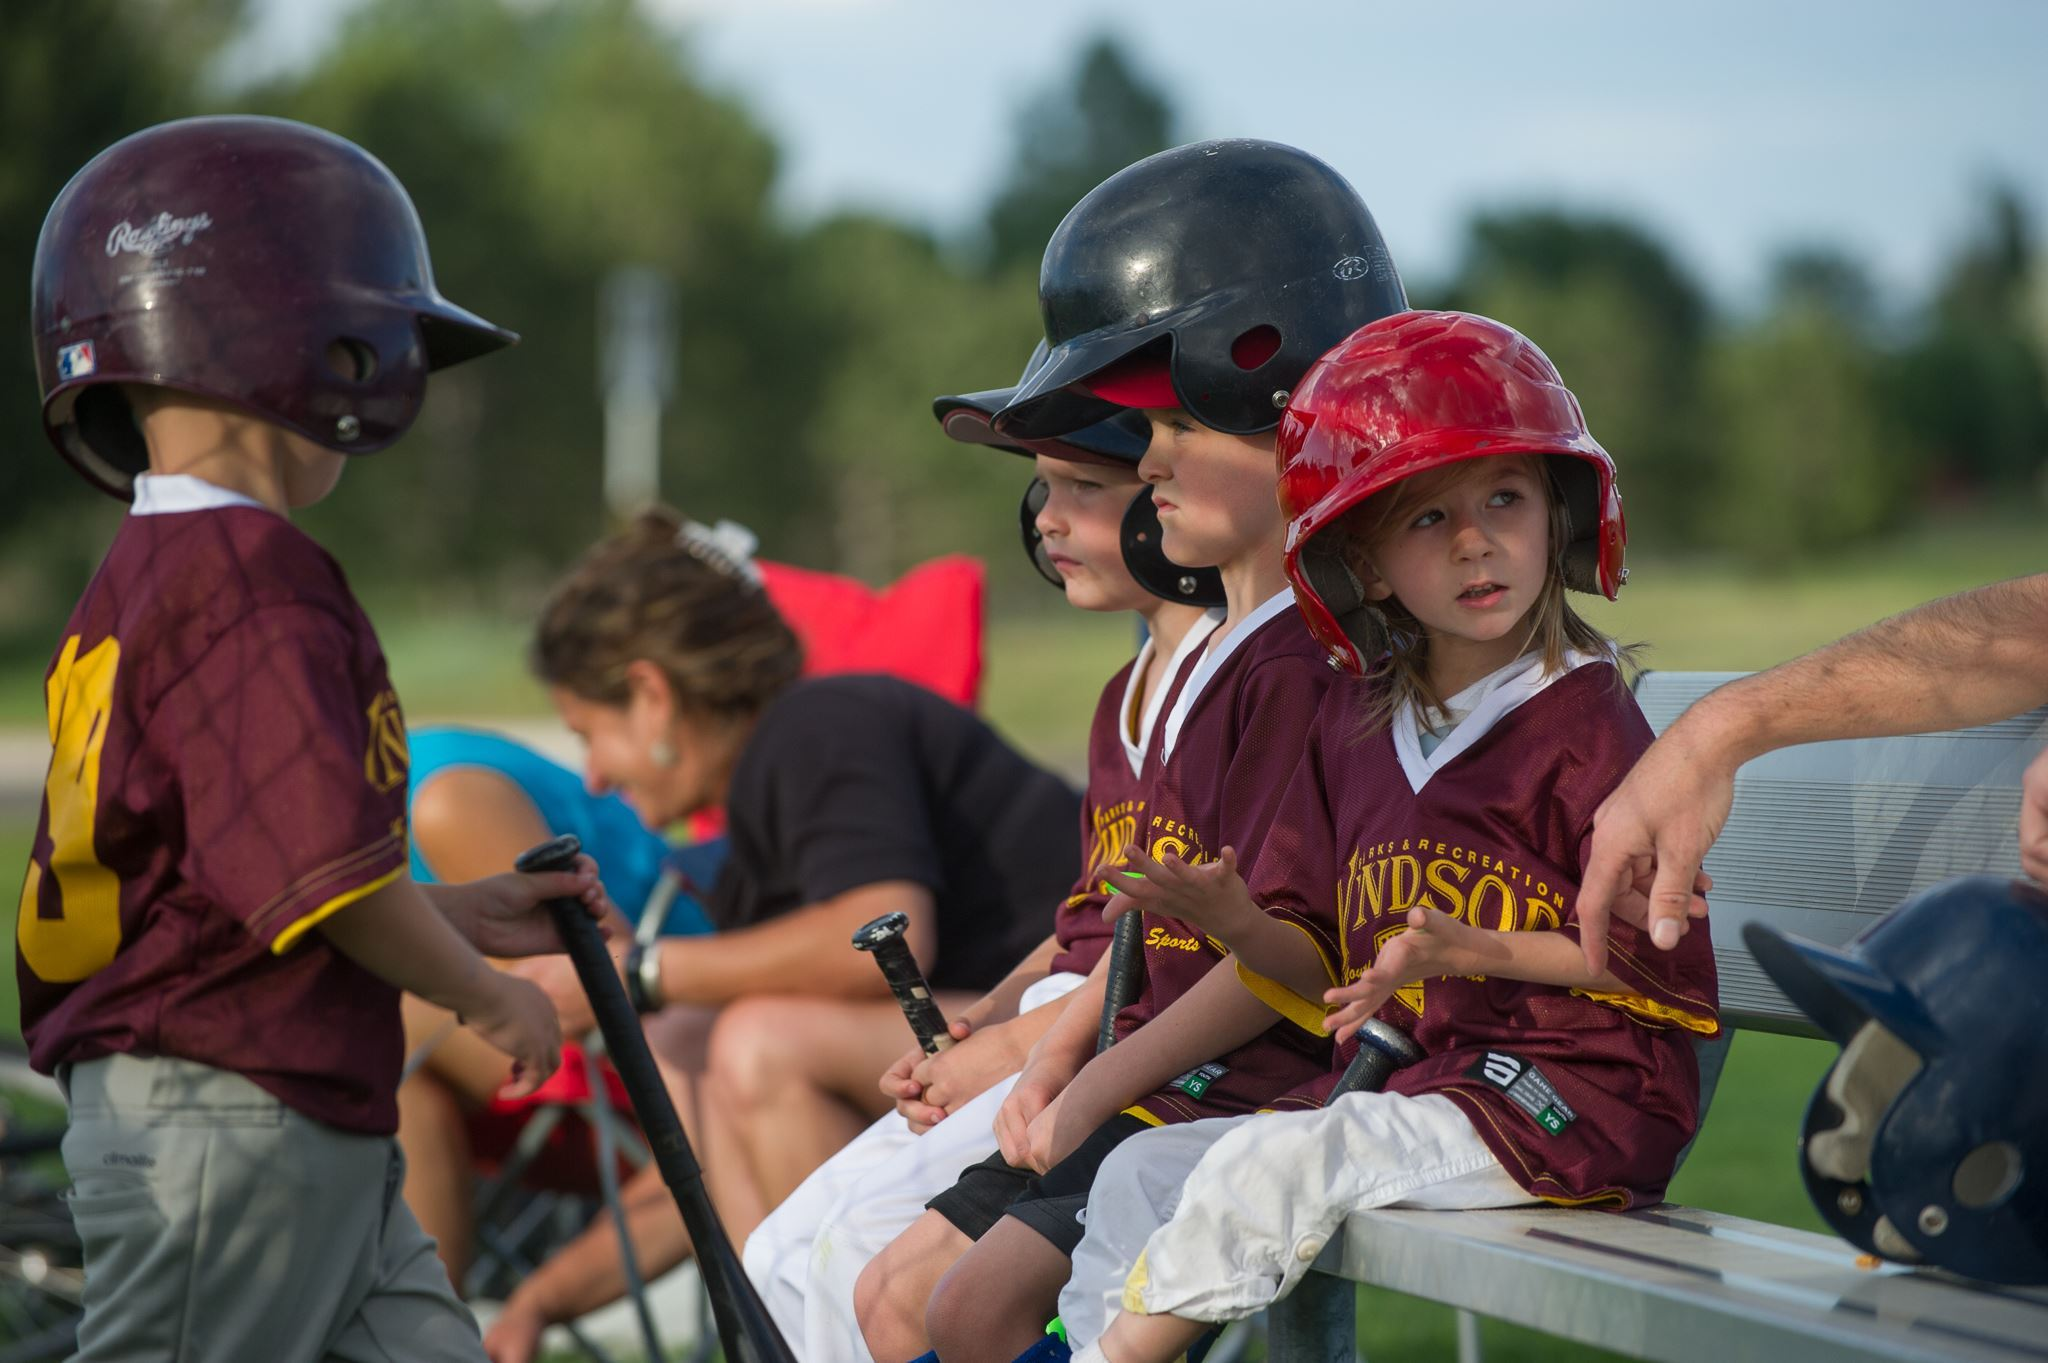 Kids Sitting on Bench with Batting Helmets On